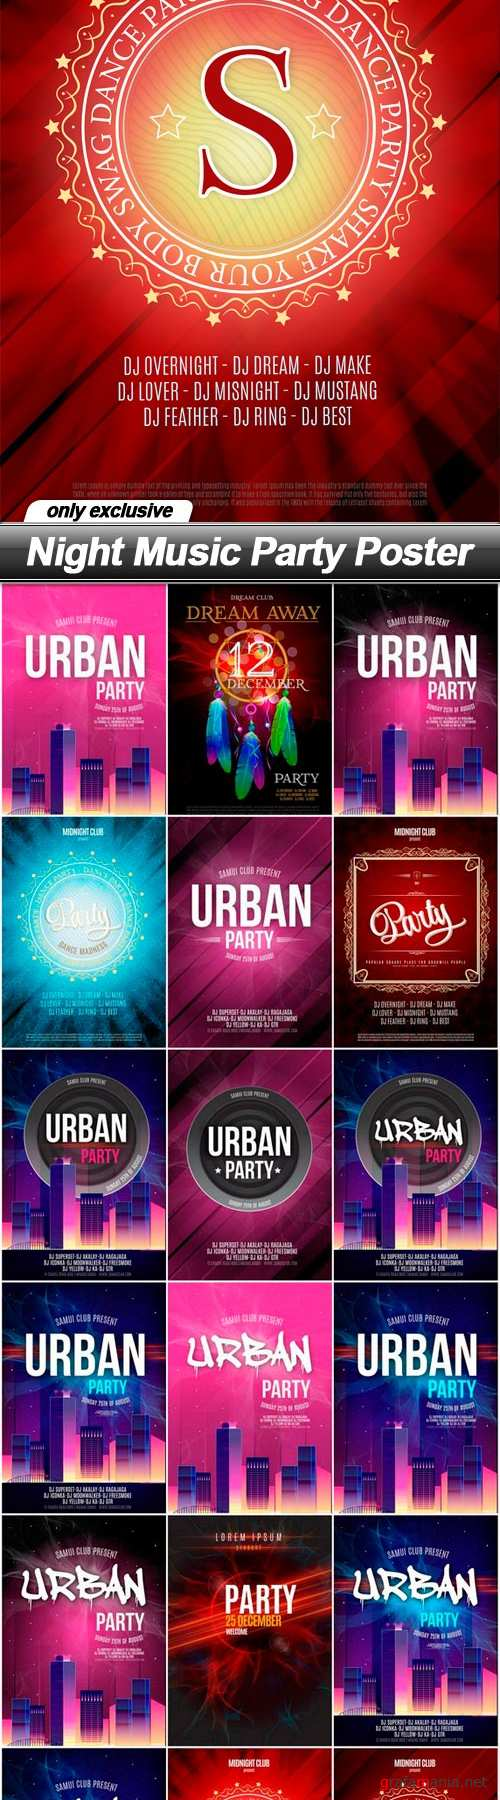 Night Music Party Poster - 19 EPS